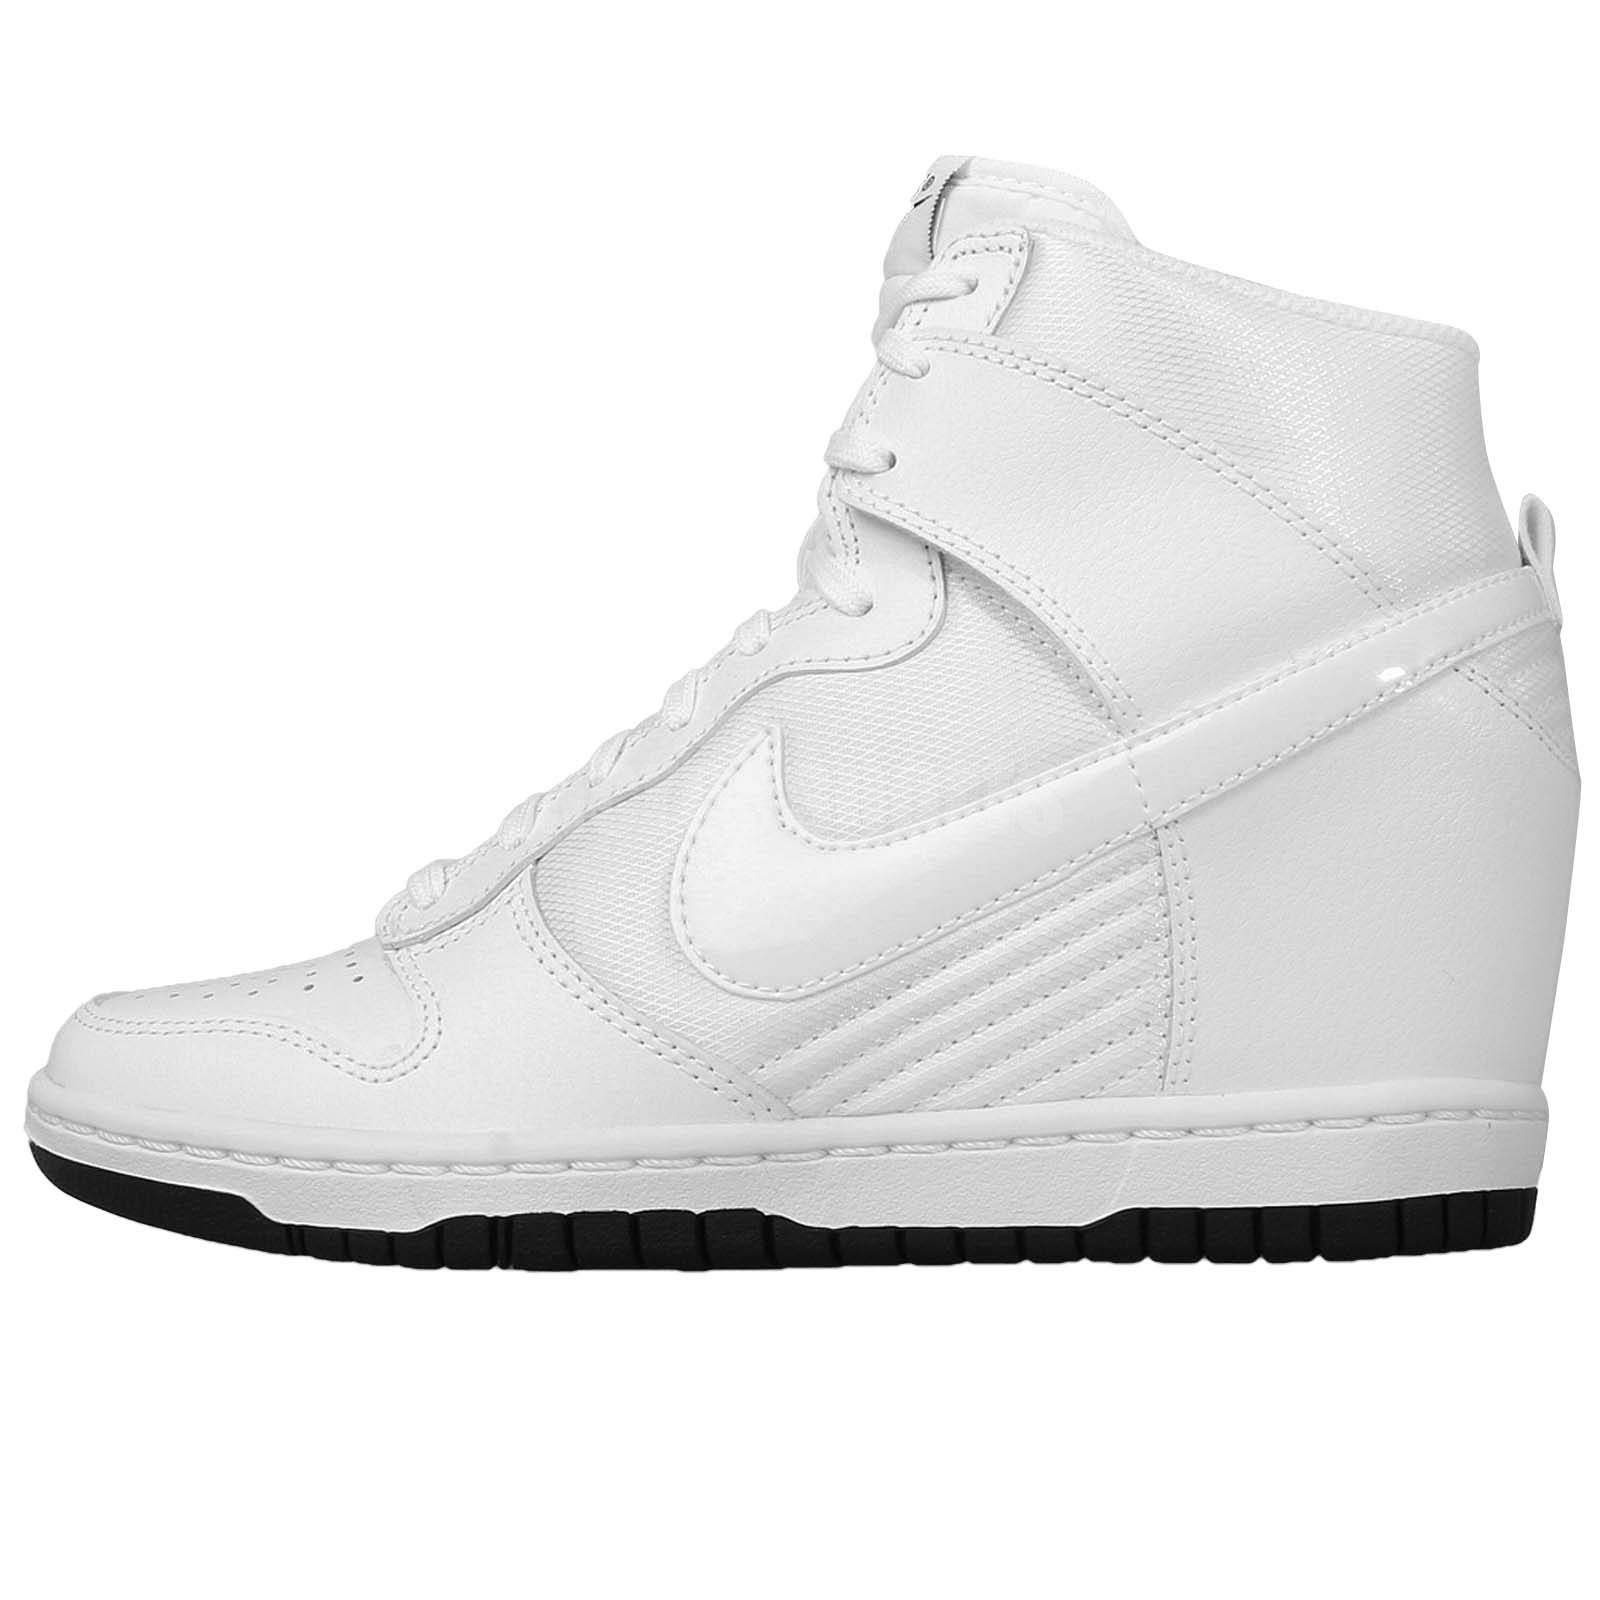 Popular Never Send Or Wire Money To Someone You Dont Know Find More Helpful Hints Here Hi Lauren, Id Like To Know More About Finance Options For Your &quotNIKE Wedge Dunk Hi Airforce 1&quot On Gumtree Please Contact Me Thanks! To Deter And